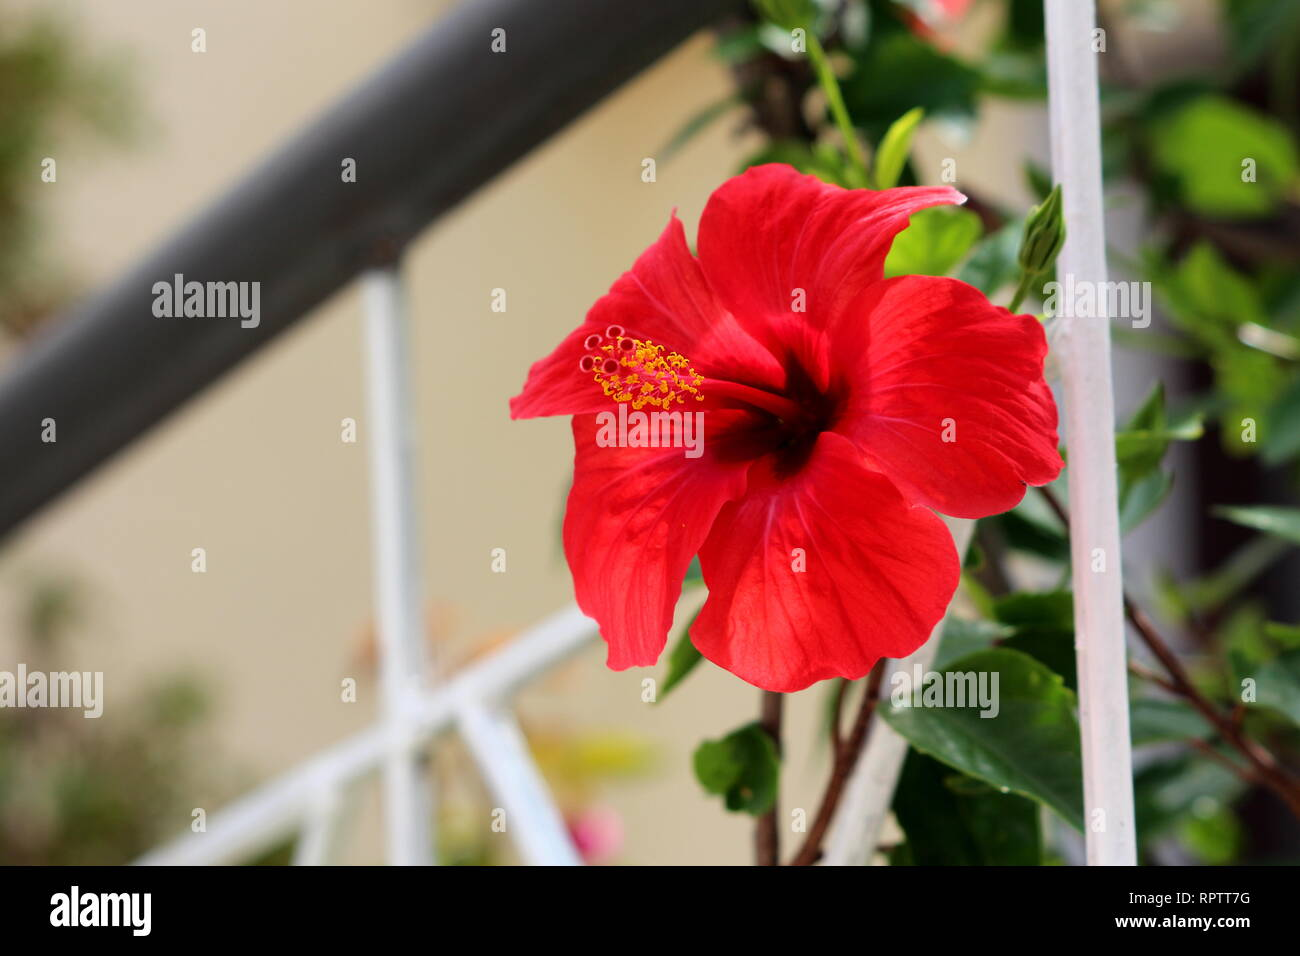 Hibiscus Syriacus Or Rose Of Sharon Or Syrian Ketmia Or Rose Mallow